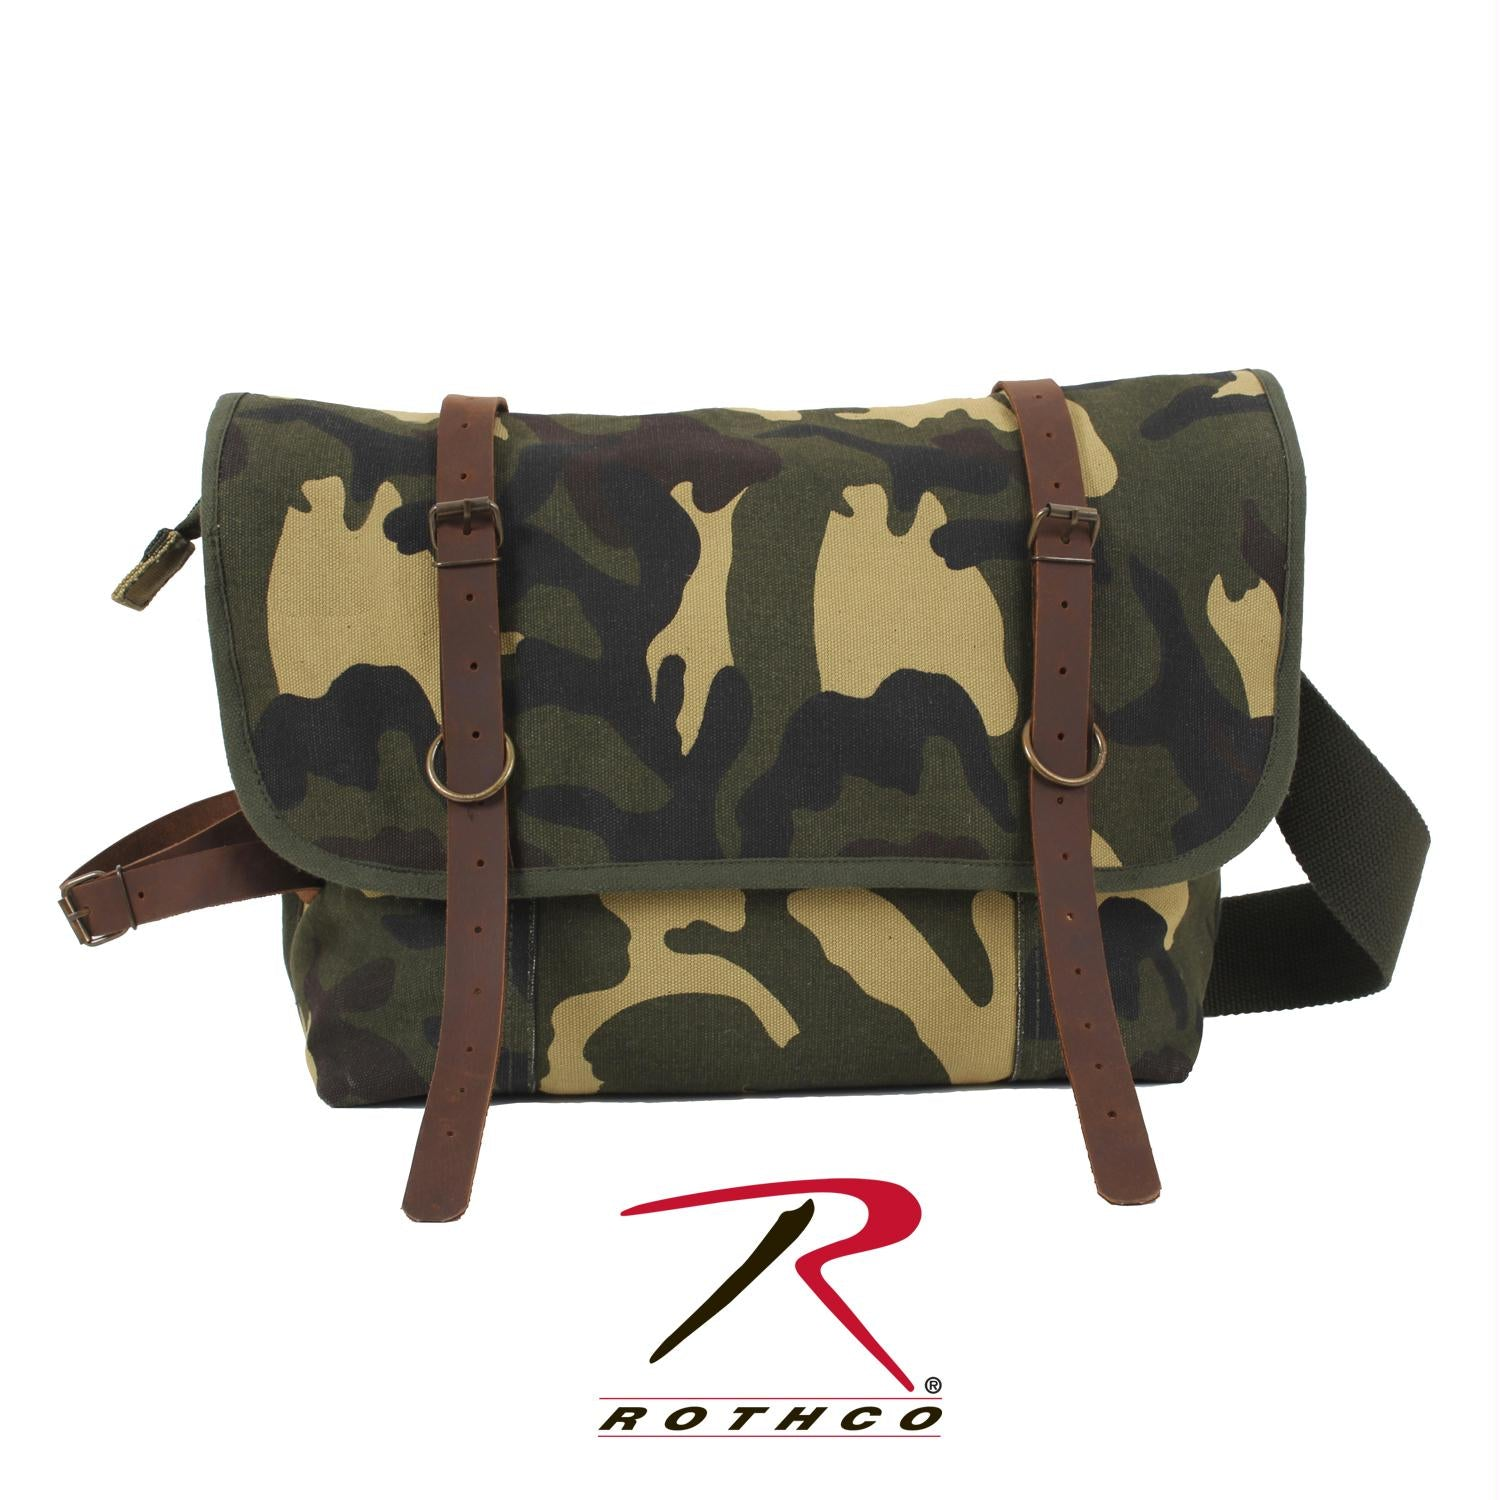 Rothco Vintage Canvas Explorer Shoulder Bag w/ Leather Accents - Woodland Camo